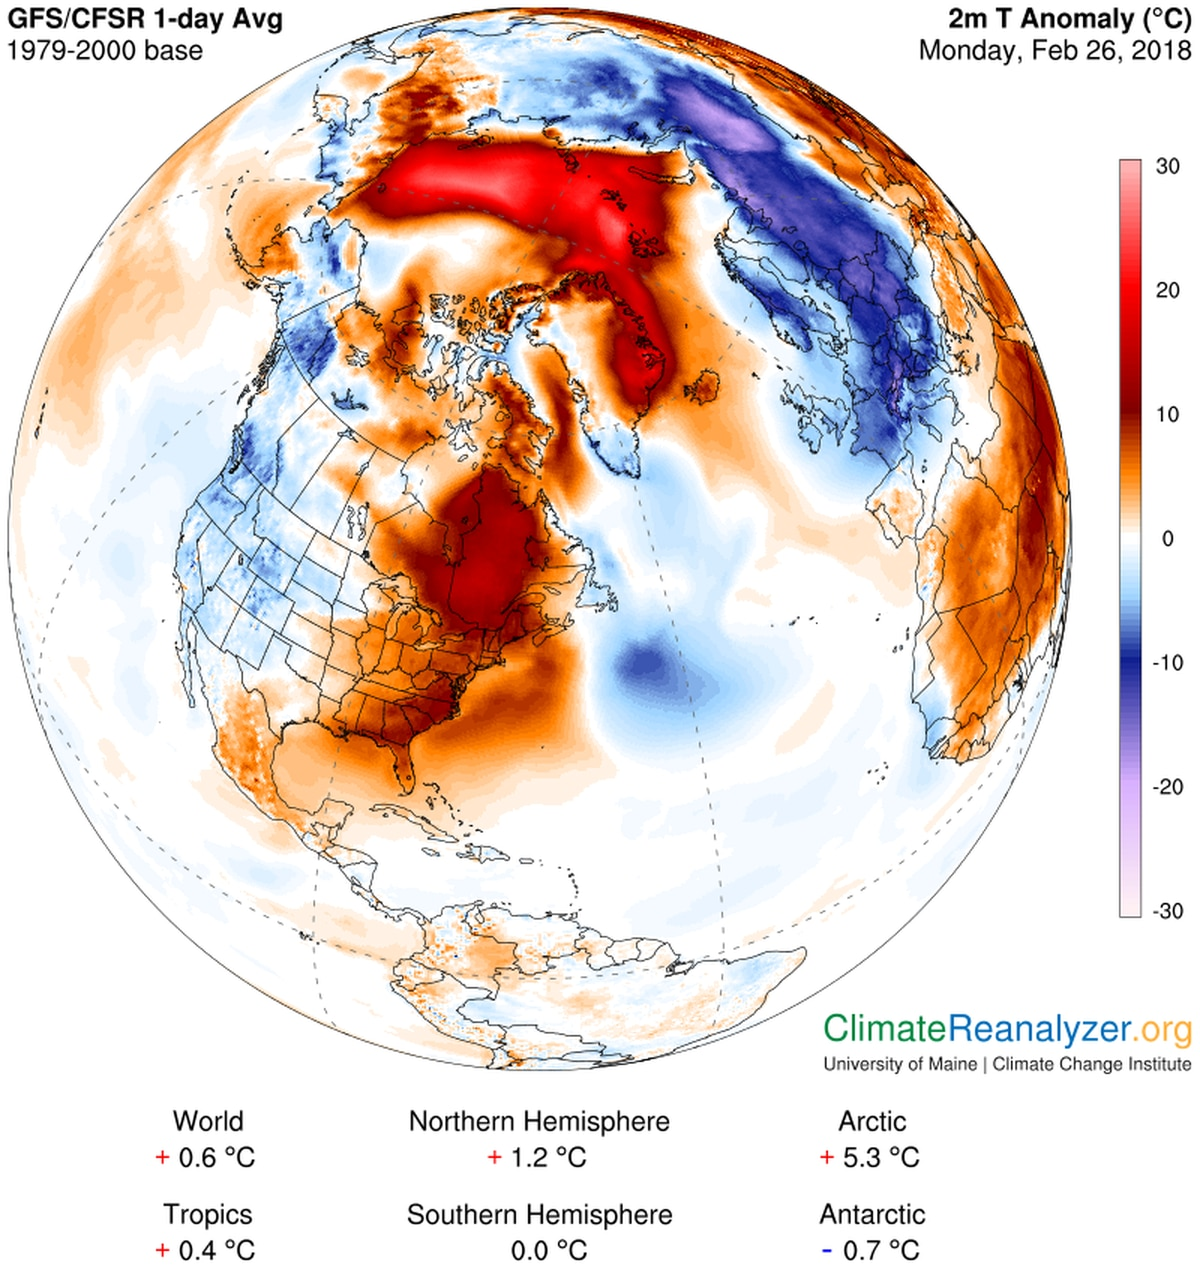 Analysis of temperature difference from normal (in Celsius) on Sunday over the Arctic. The temperature was believed to be above freezing at the North Pole. (University of Maine Climate Re-analyzer)